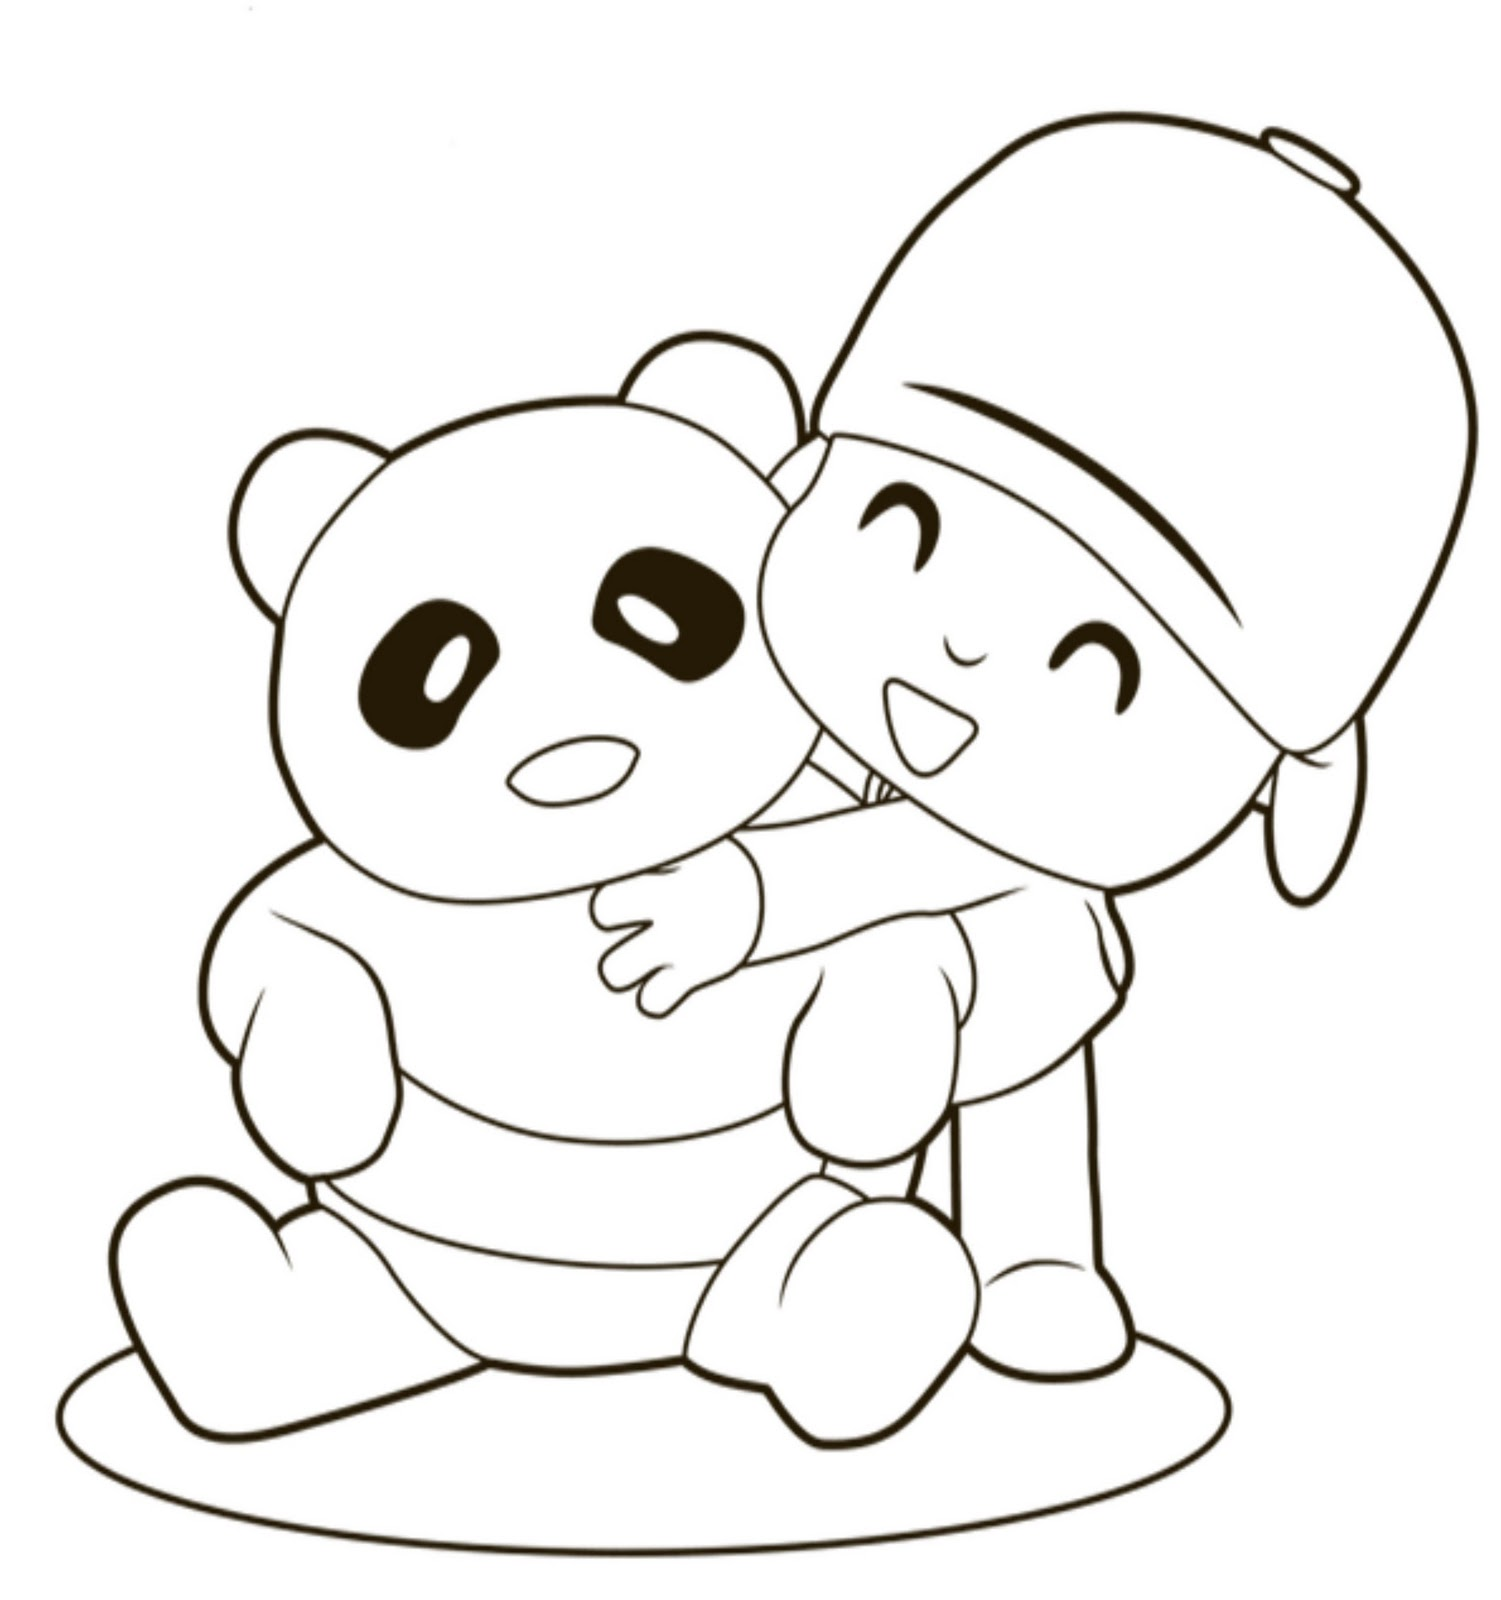 Free Printable Pocoyo Coloring Pages For Kids Toddler Coloring Sheets Free Printables